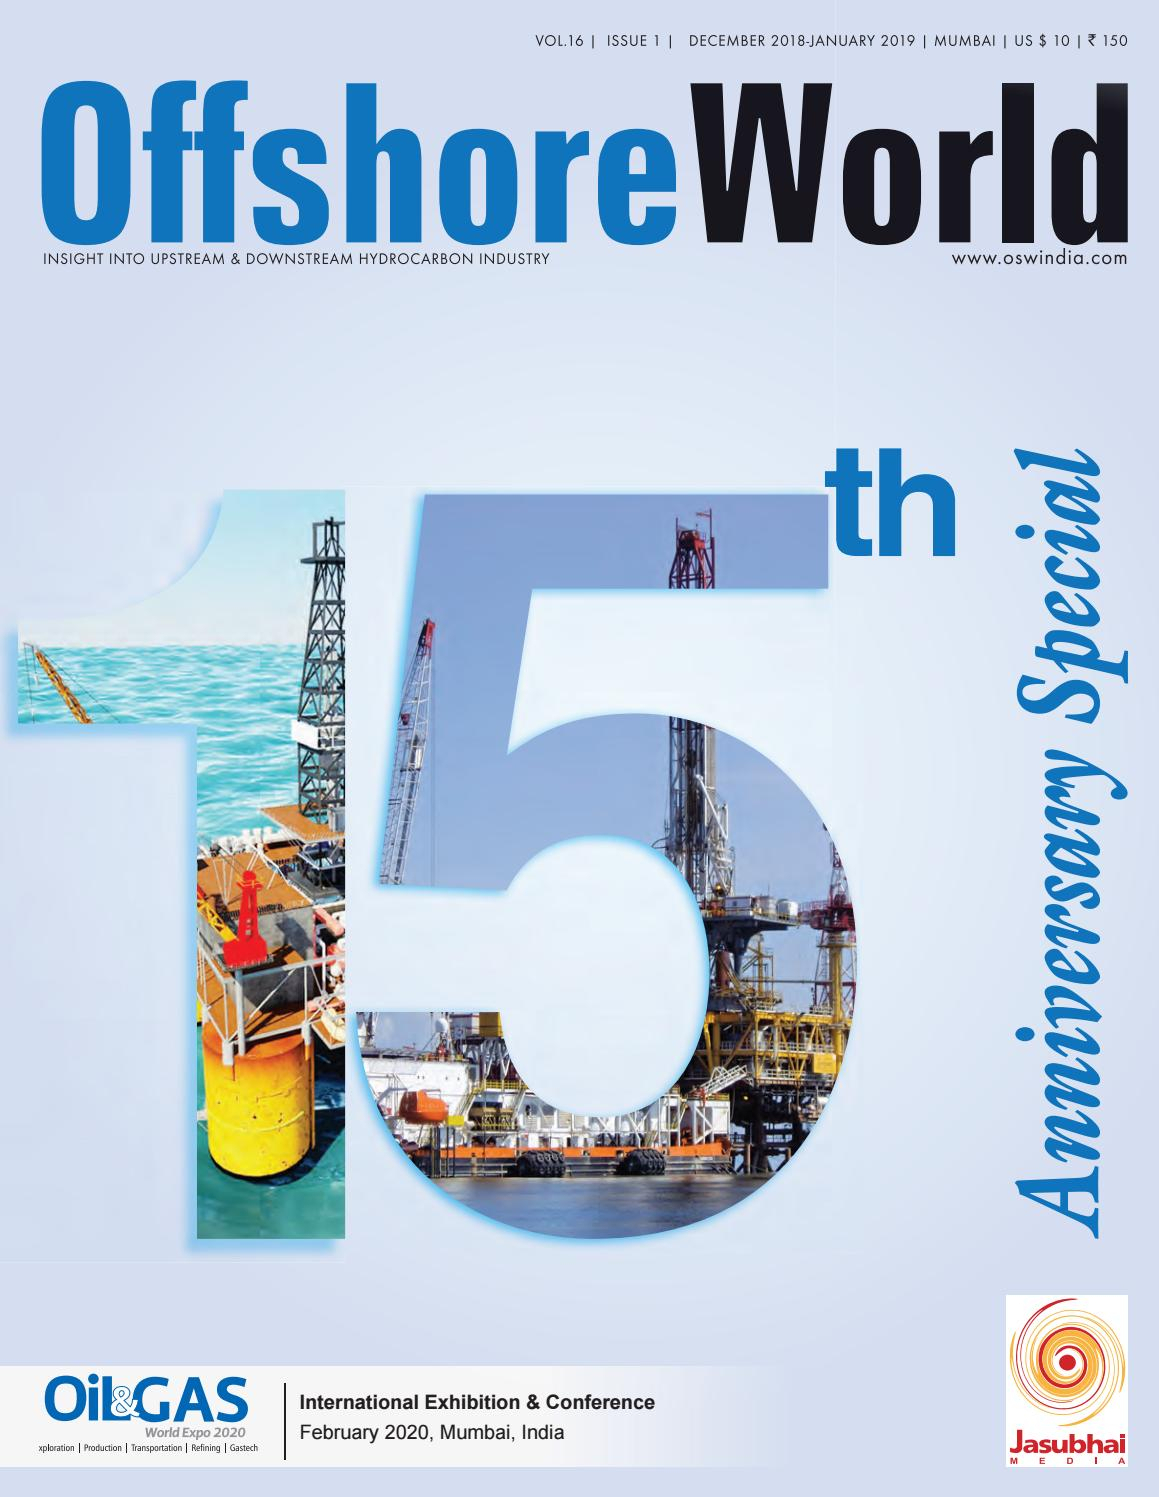 Offshore World By Offshore World  Issuu throughout Offshore Rotation Calendar